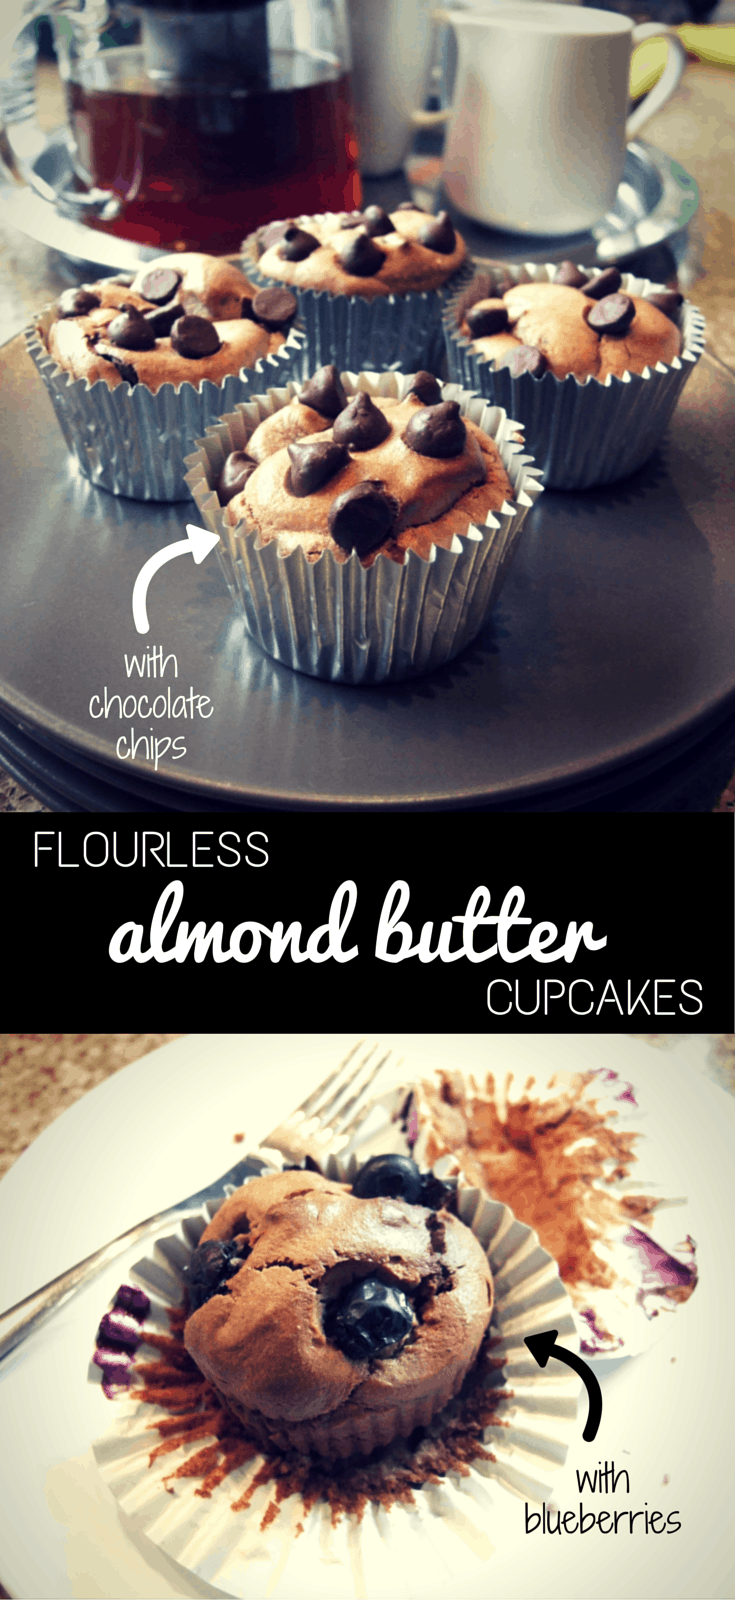 Moist & delicious easy flourless cupcakes made with almond butter & banana. Add blueberries or chocolate chips for a healthy but decadent gluten-free treat.